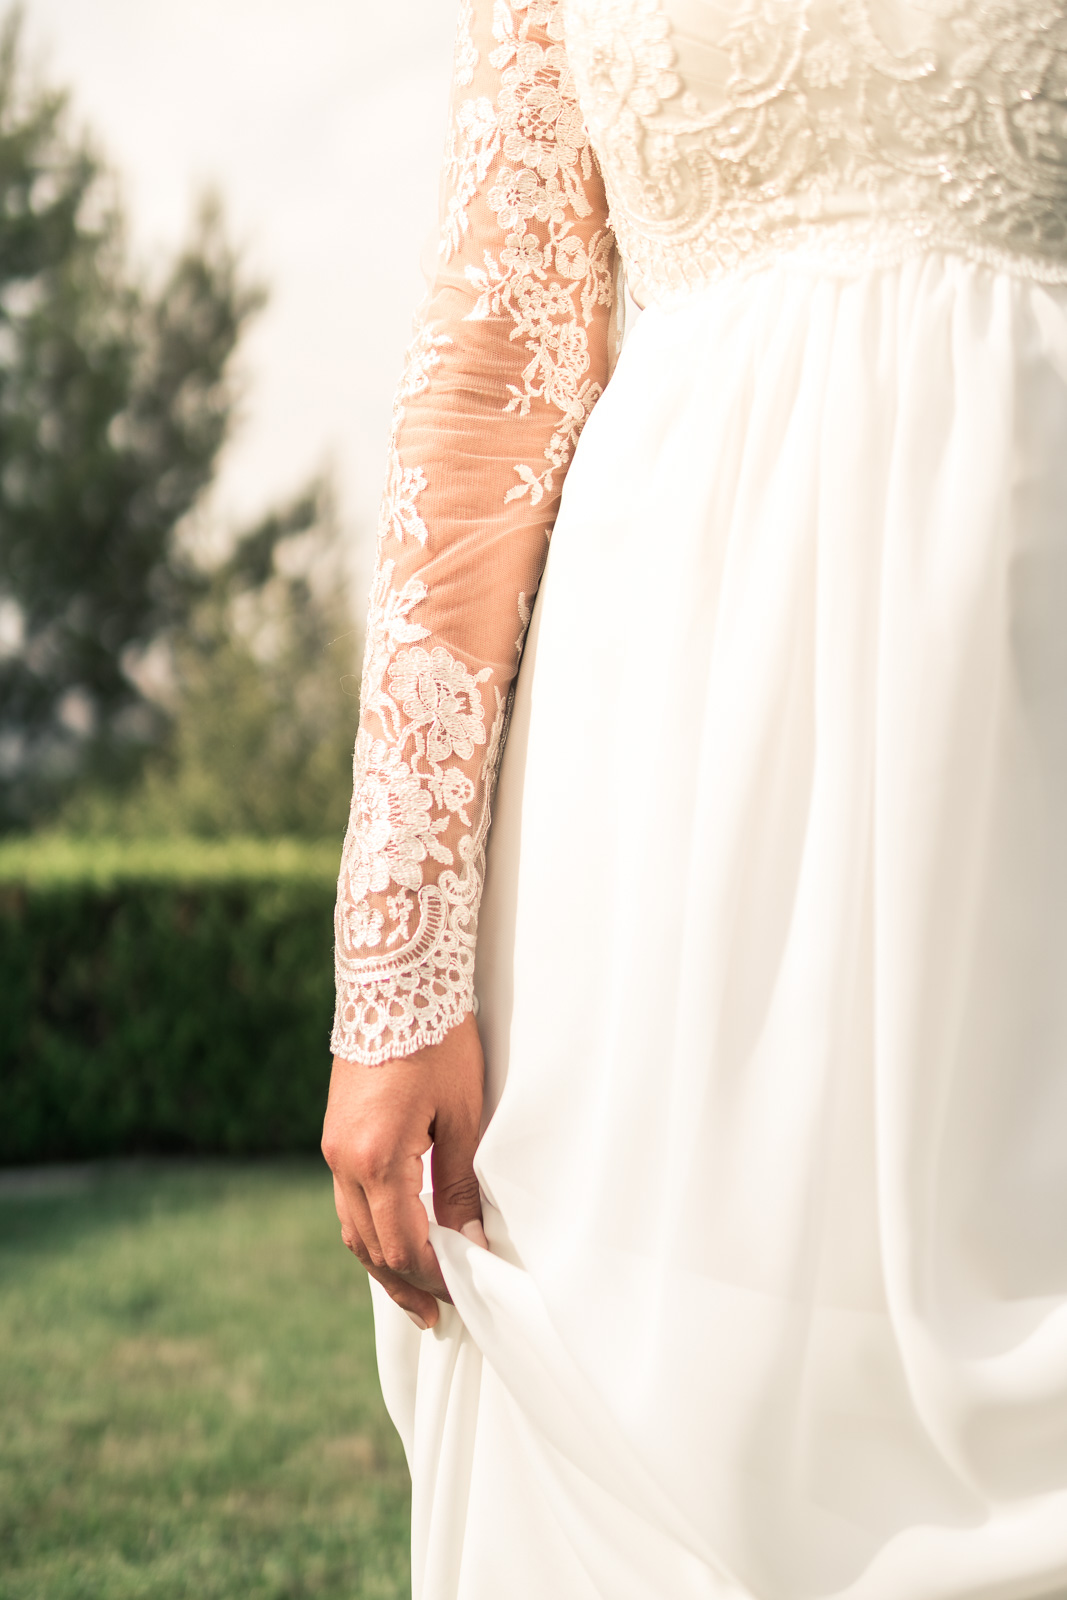 87_Angel-Brea-Orange-County_Joseph-Barber-Wedding-Photography.jpg